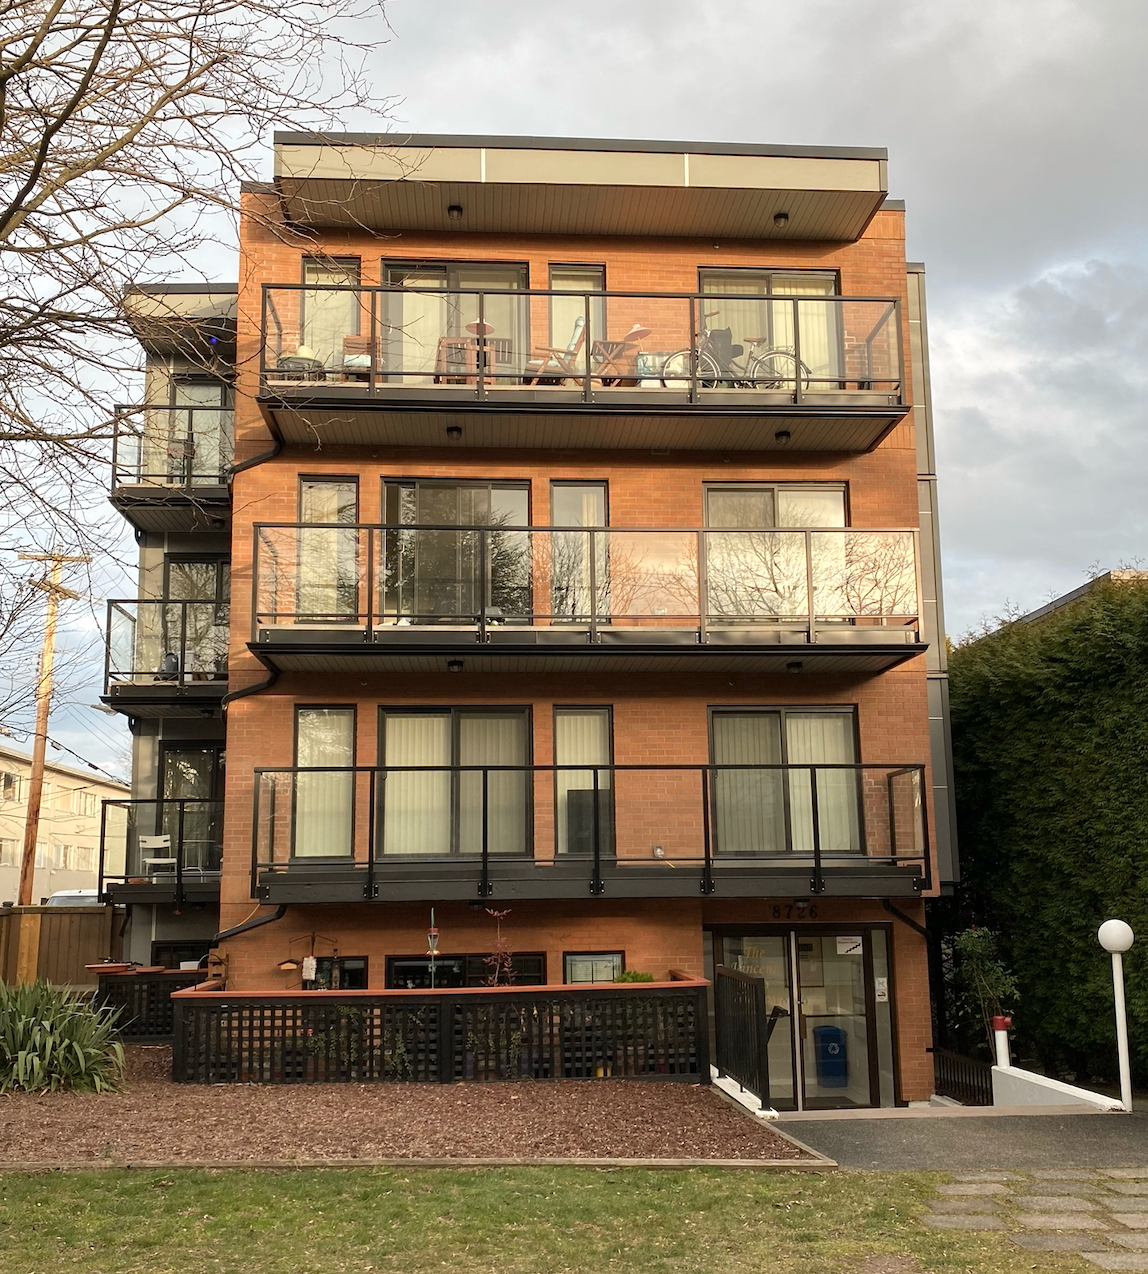 Main Photo: 8726 Hudson Street in Vancouver: Marpole VW Multifamily for sale (Vancouver West)  : MLS®# C8033862